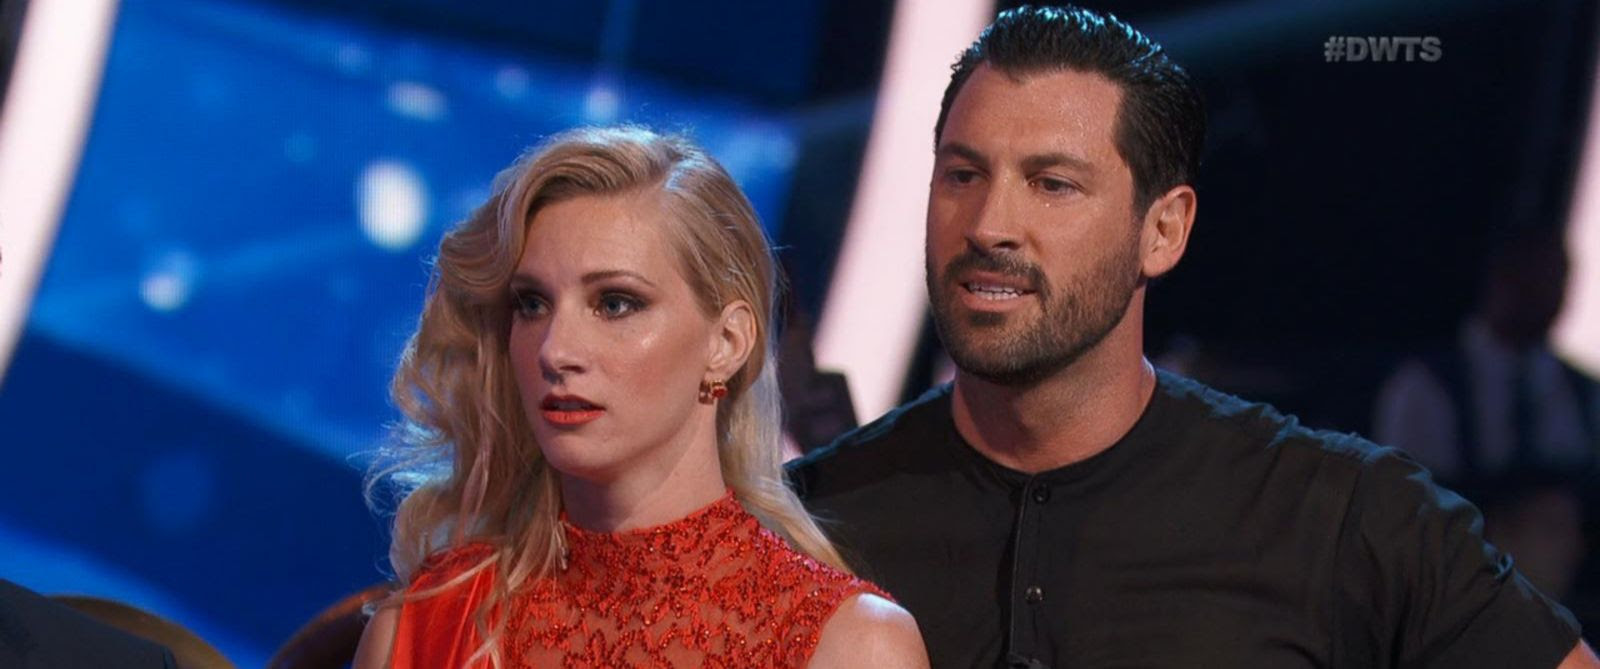 Image result for heather maks dancing with the stars eliminated